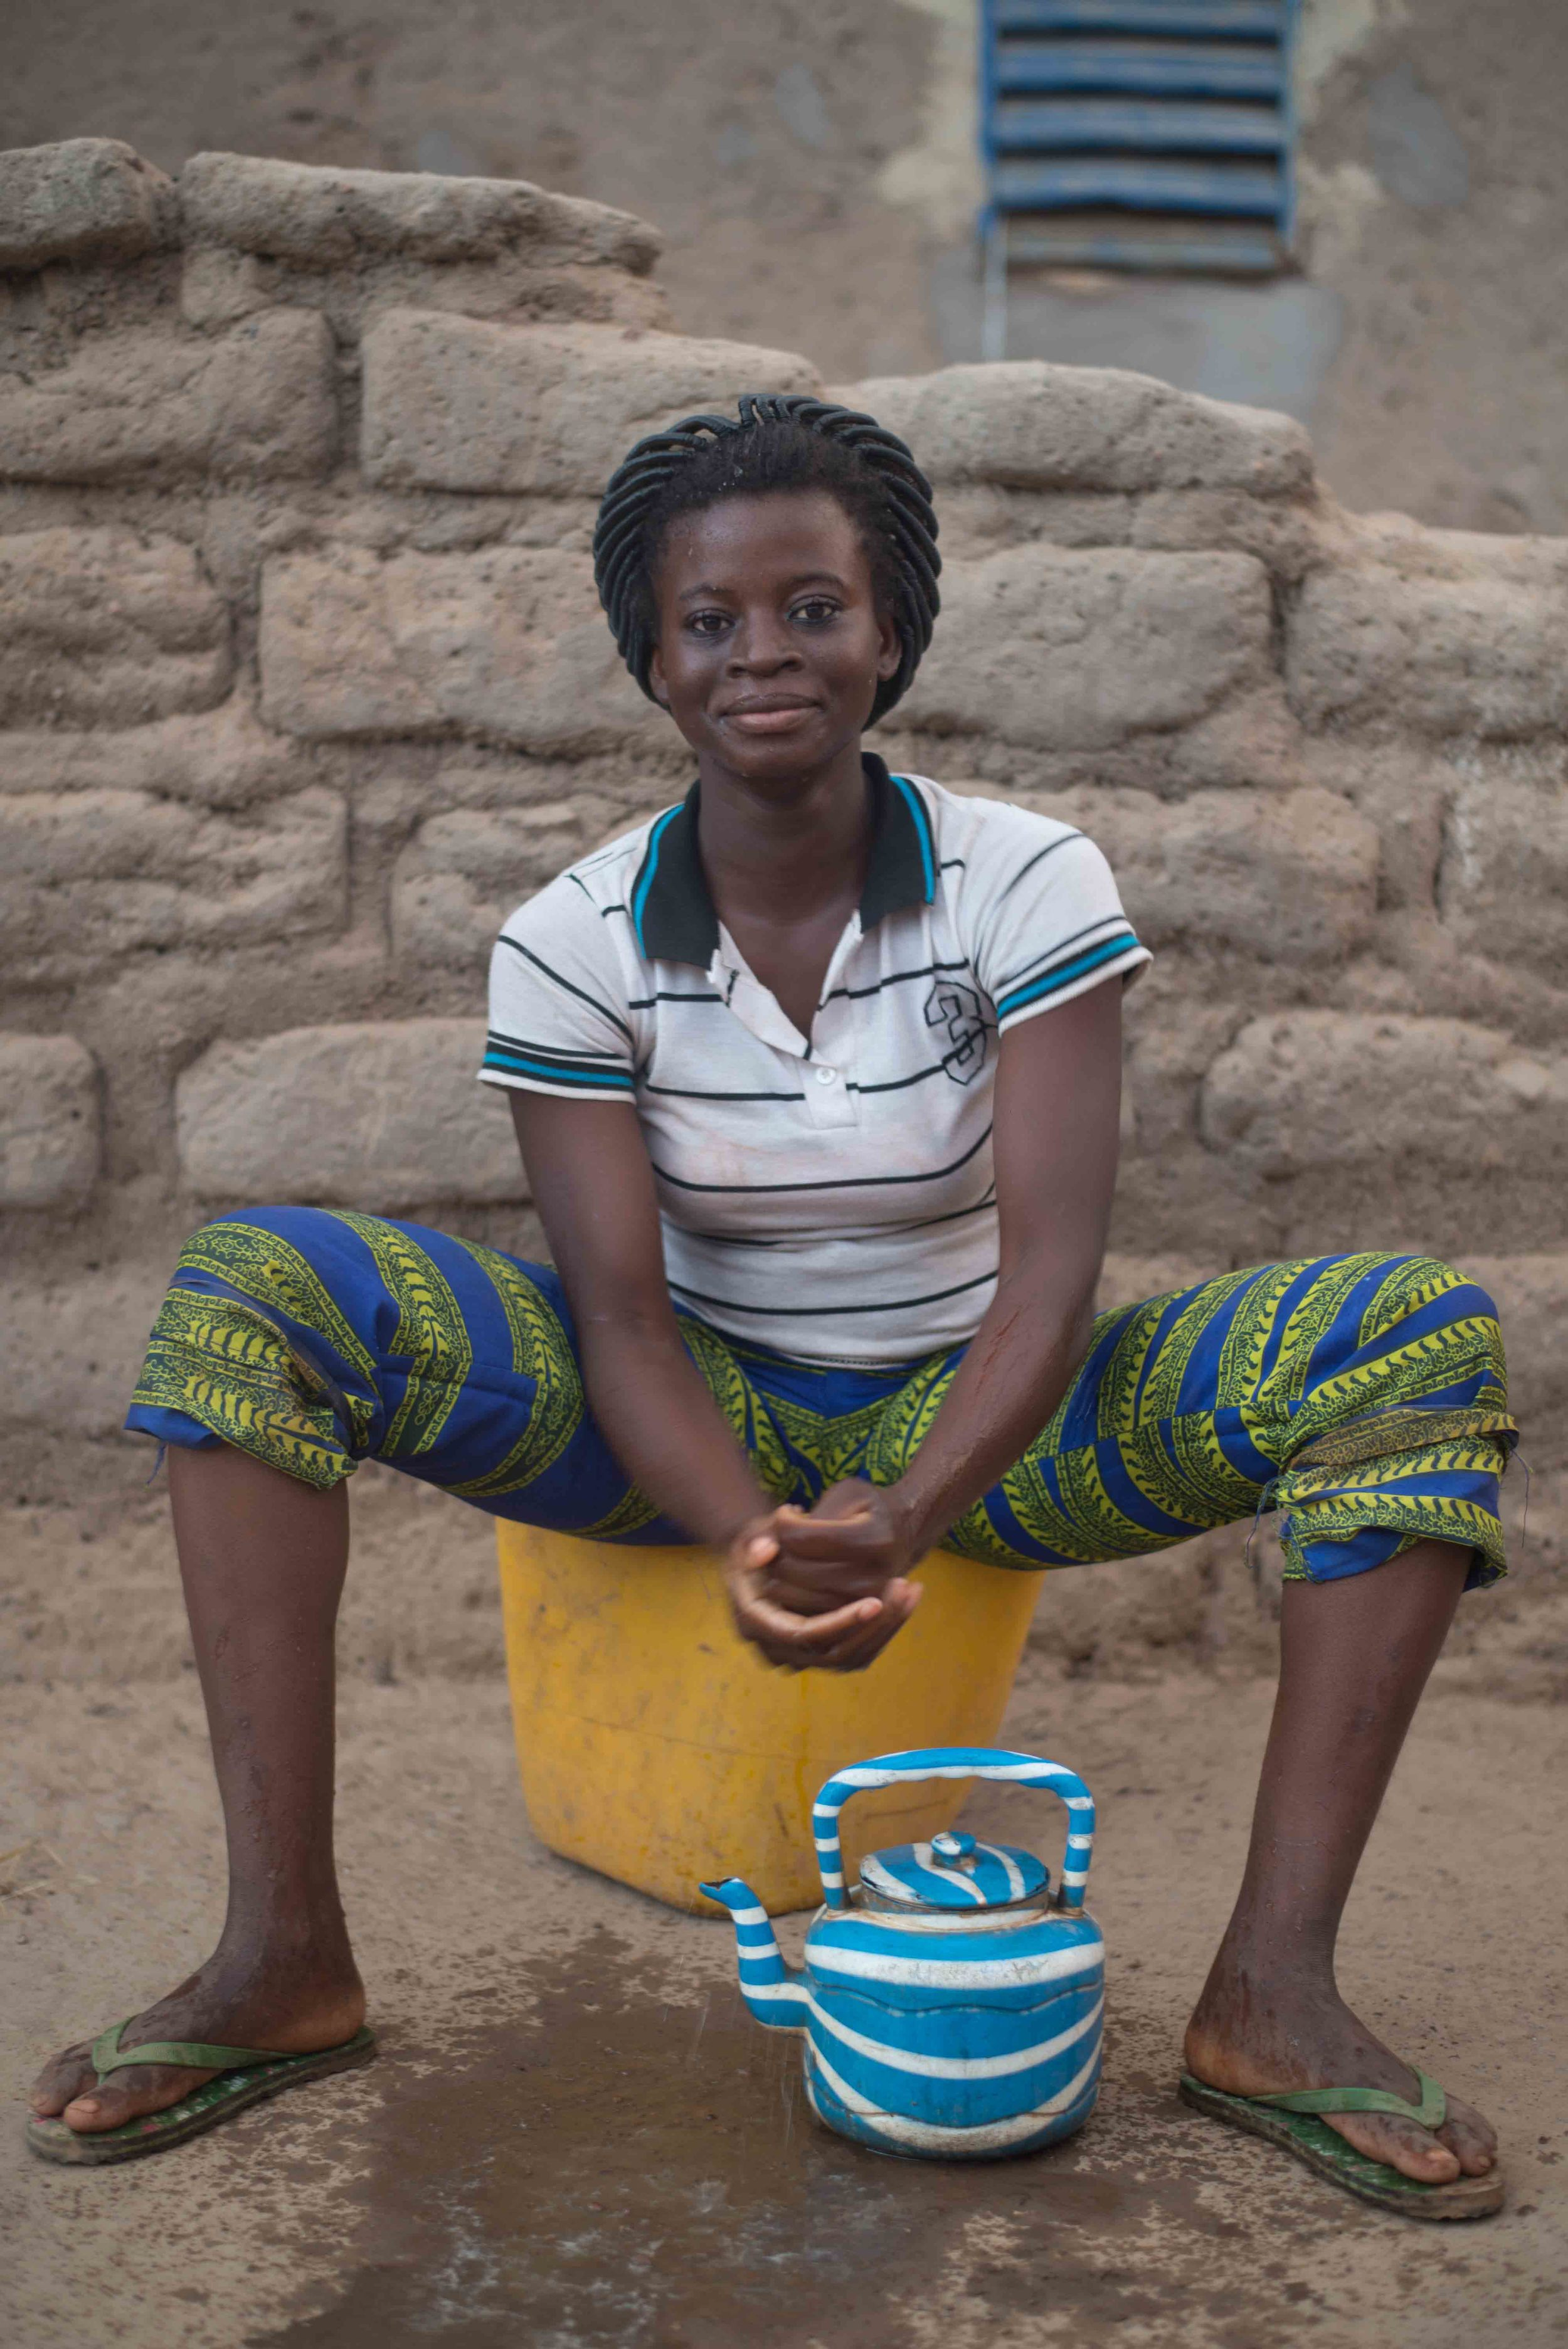 Zalisa demonstrates abulations with with a plastic teapot used for washing all over Burkina.